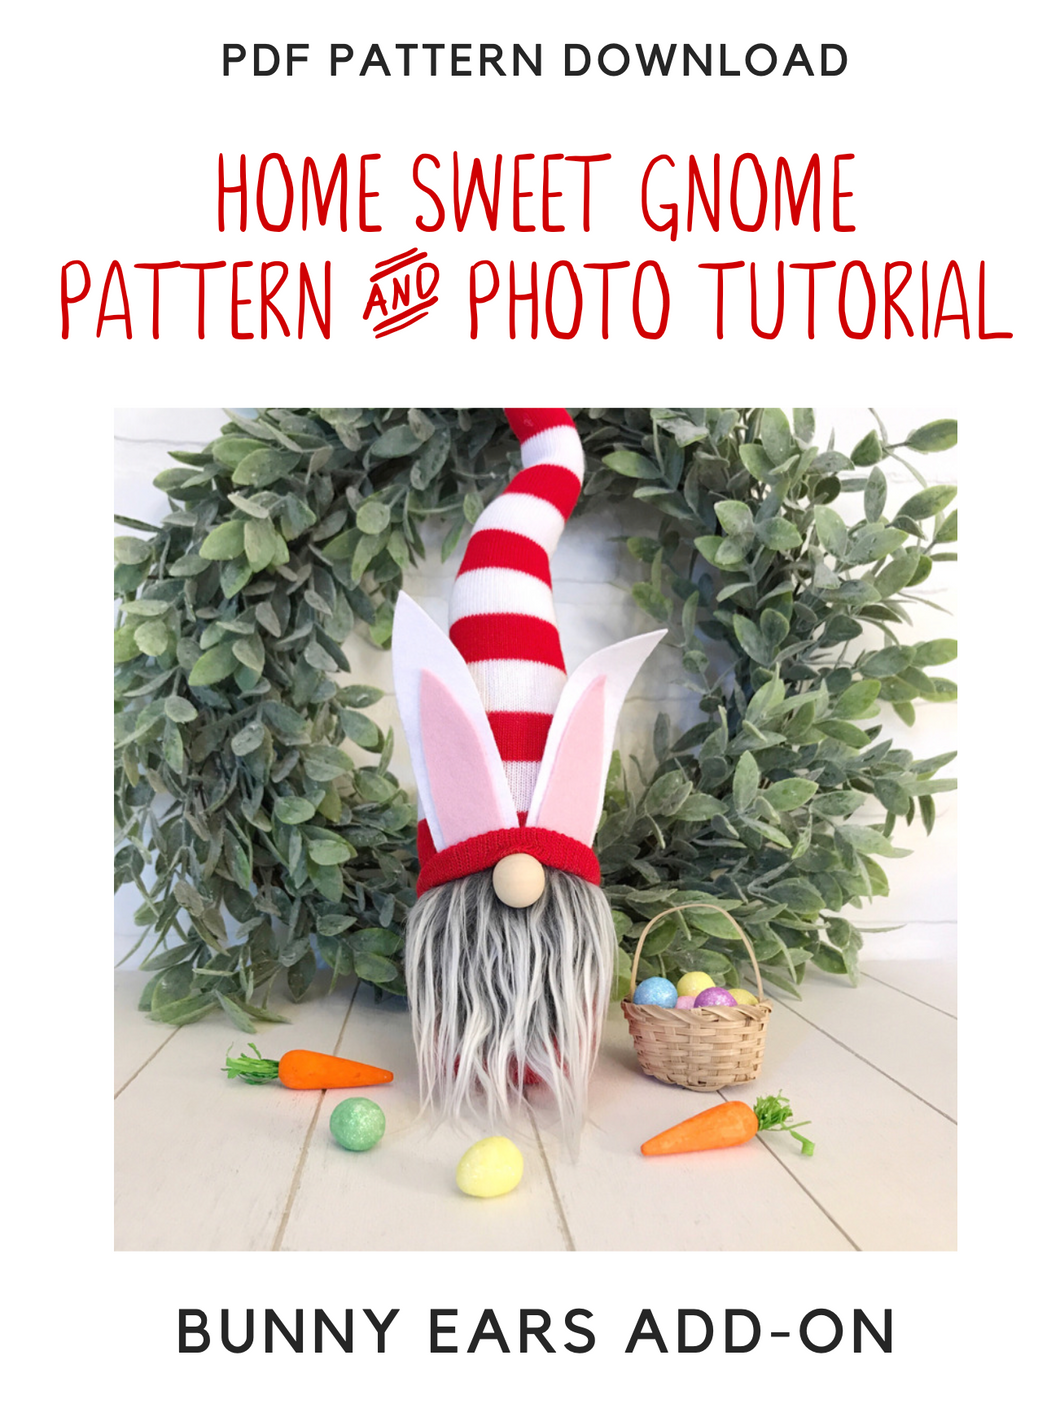 ADD-ON - DIY Bunny Ears Pattern & Tutorial